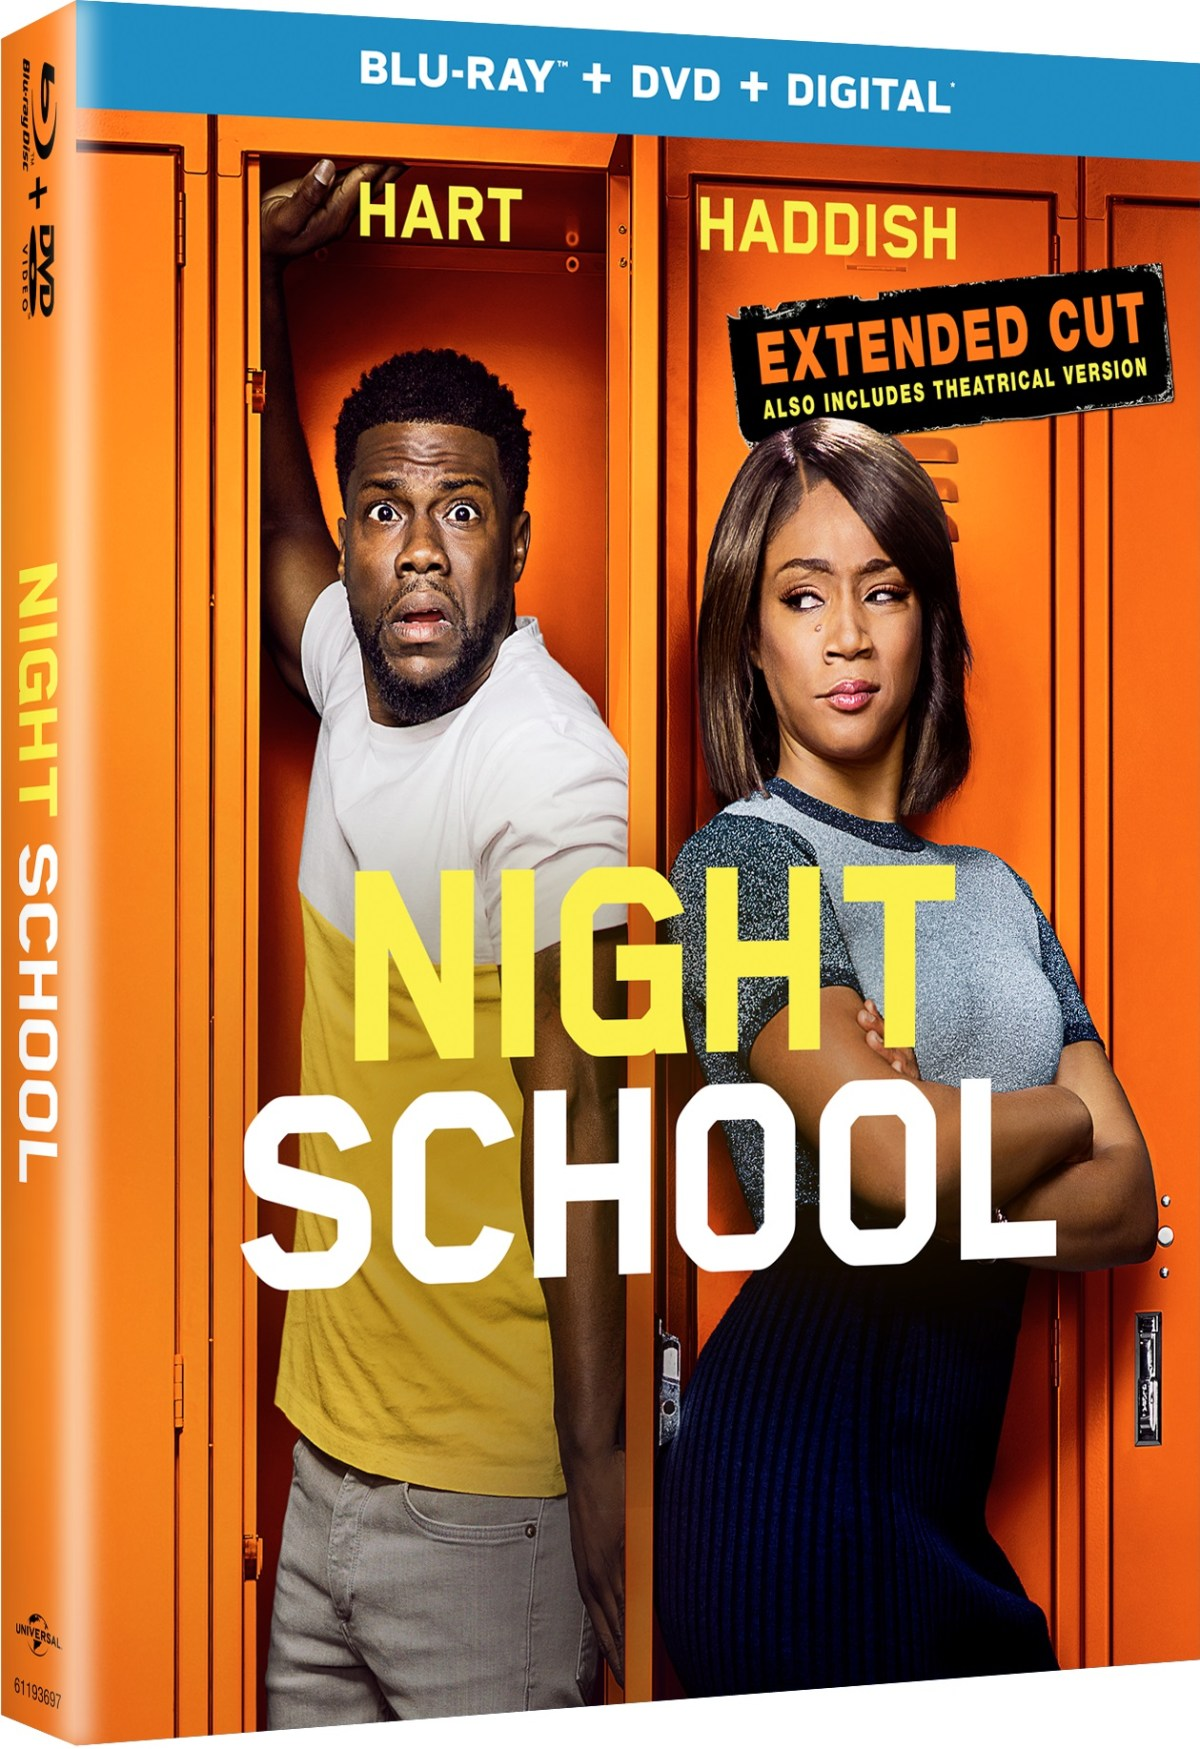 [GIVEAWAY] Win 'Night School' On Blu-ray: Available On 4K Ultra HD, Blu-ray & DVD January 1, 2019 From Universal 12